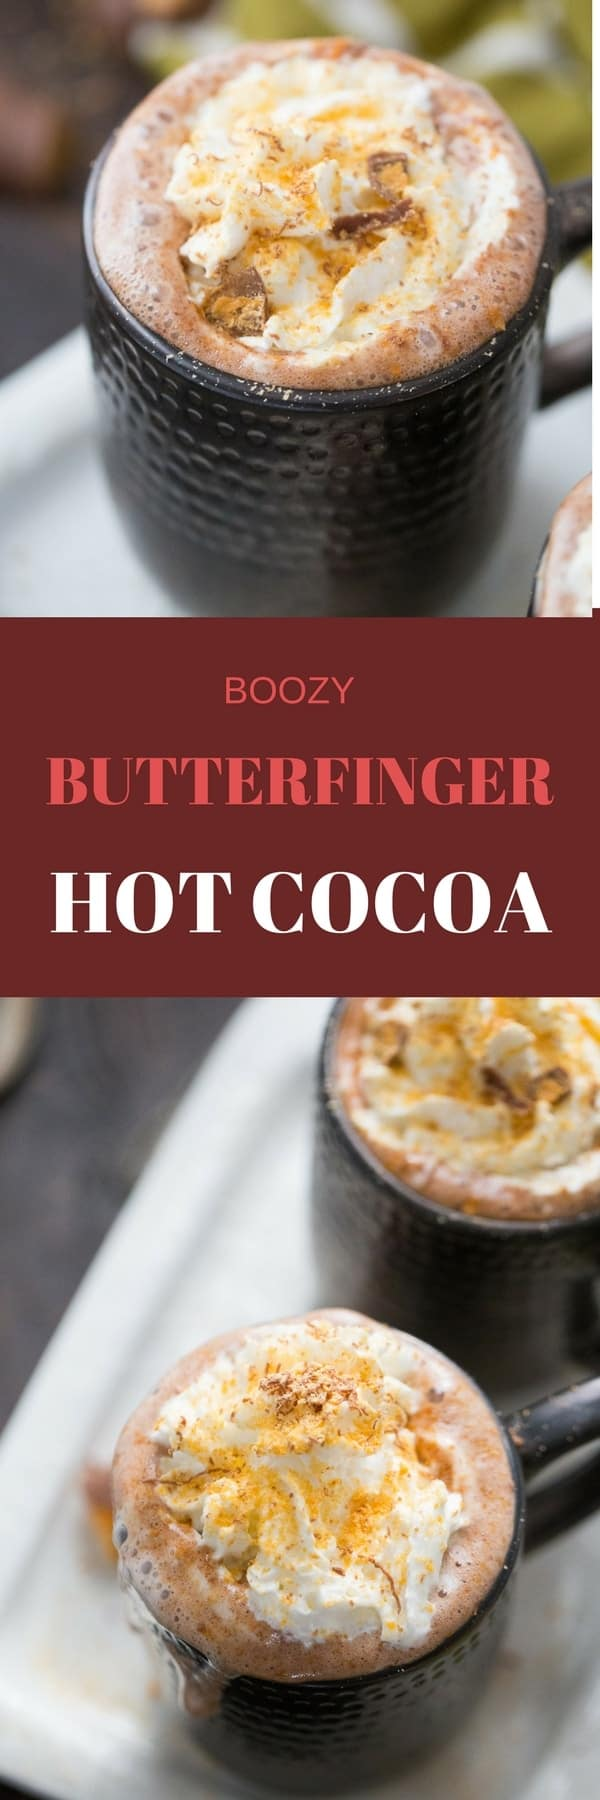 This is the best hot cocoa recipe is going to blow you away! The Butterfinger flavor is irresistible!